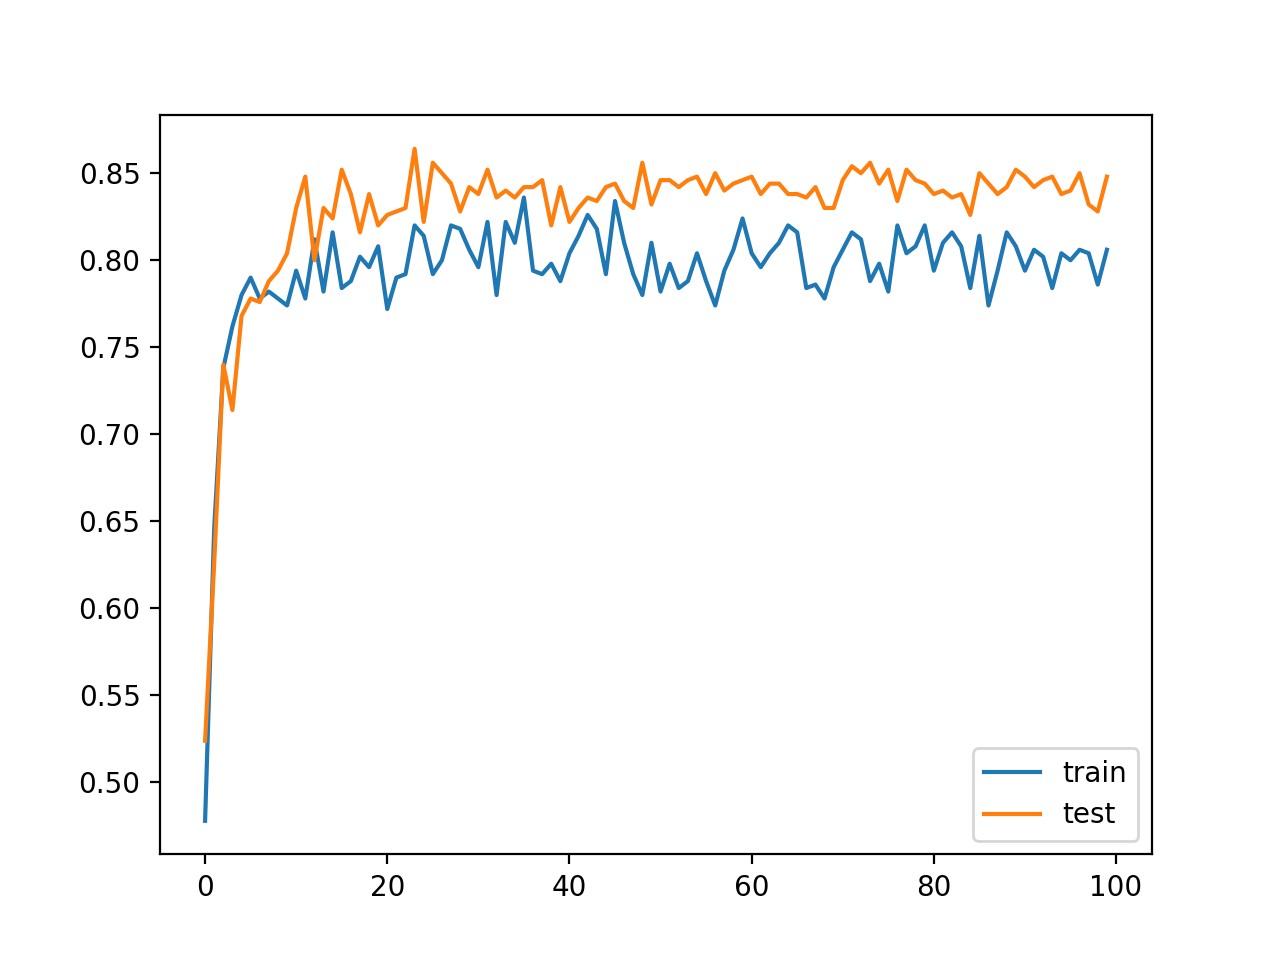 Line Plot Classification Accuracy of MLP With Batch Normalization After Activation Function on Train and Test Datasets Over Training Epochs